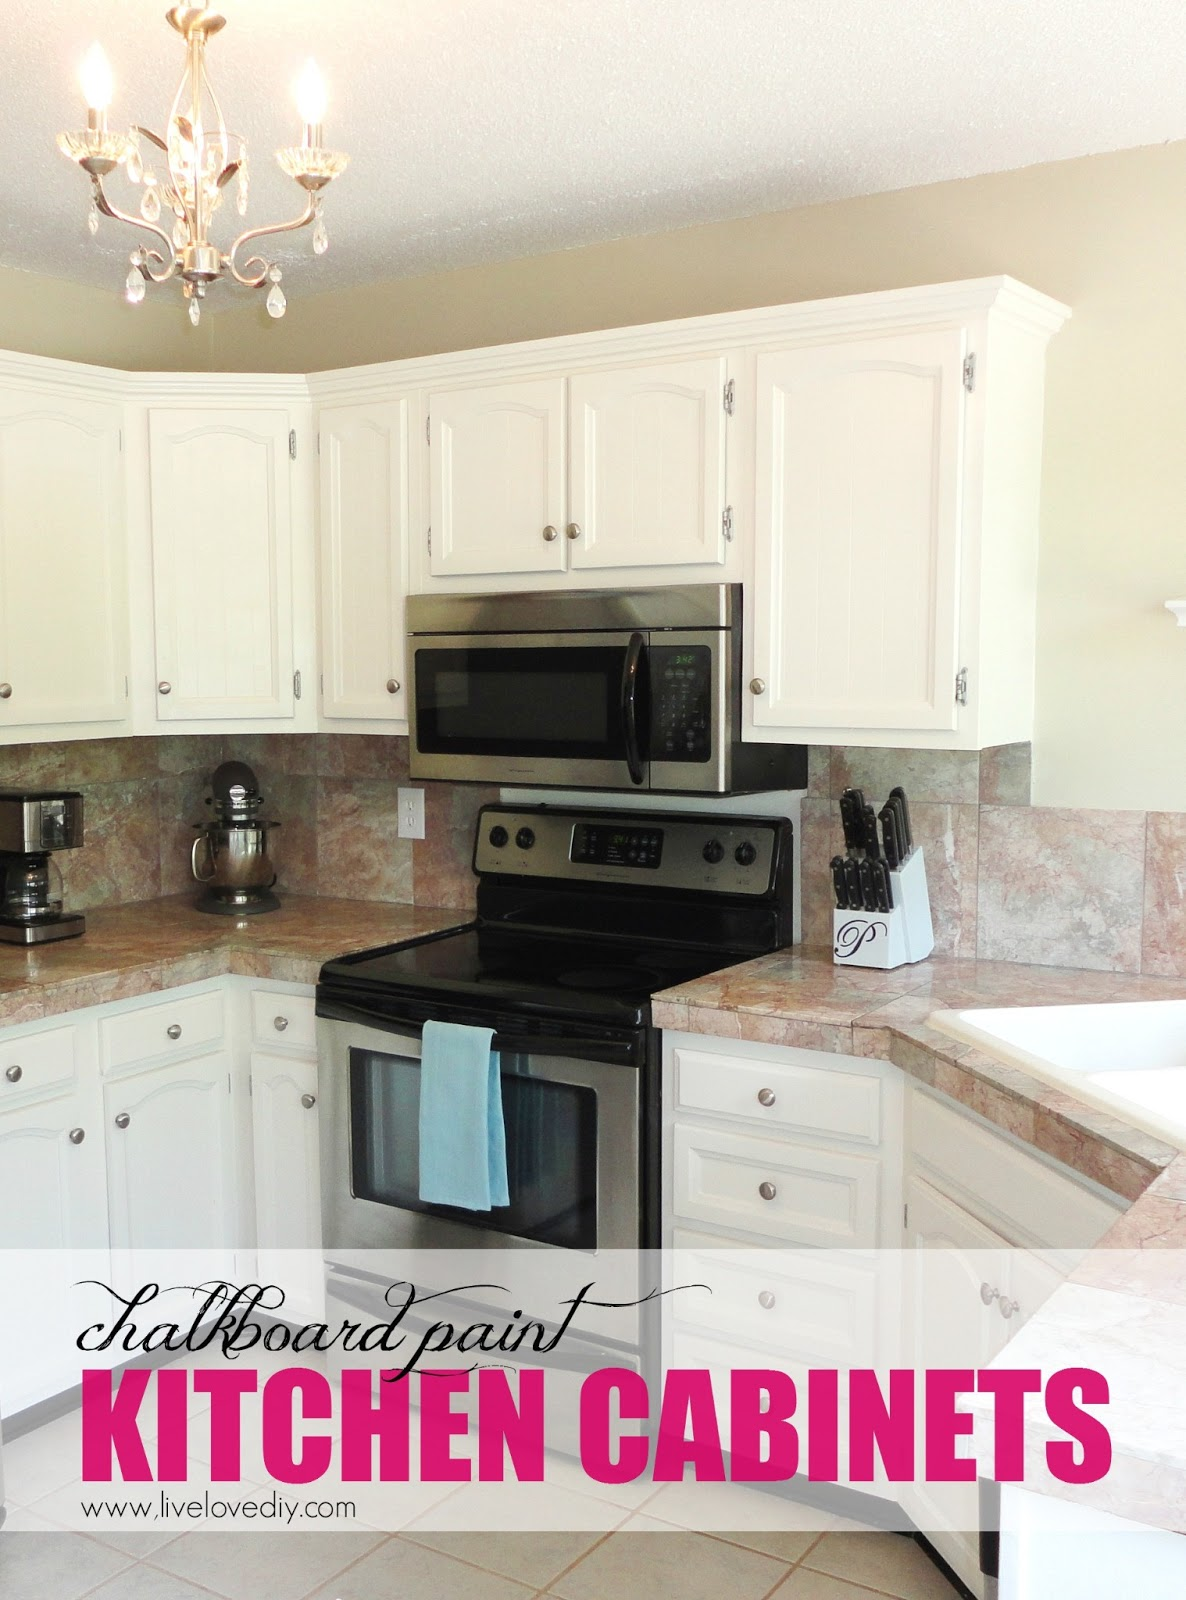 kitchen cabinet chalk paint makeover paint kitchen cabinets white The Chalkboard Paint Kitchen Cabinet Makeover